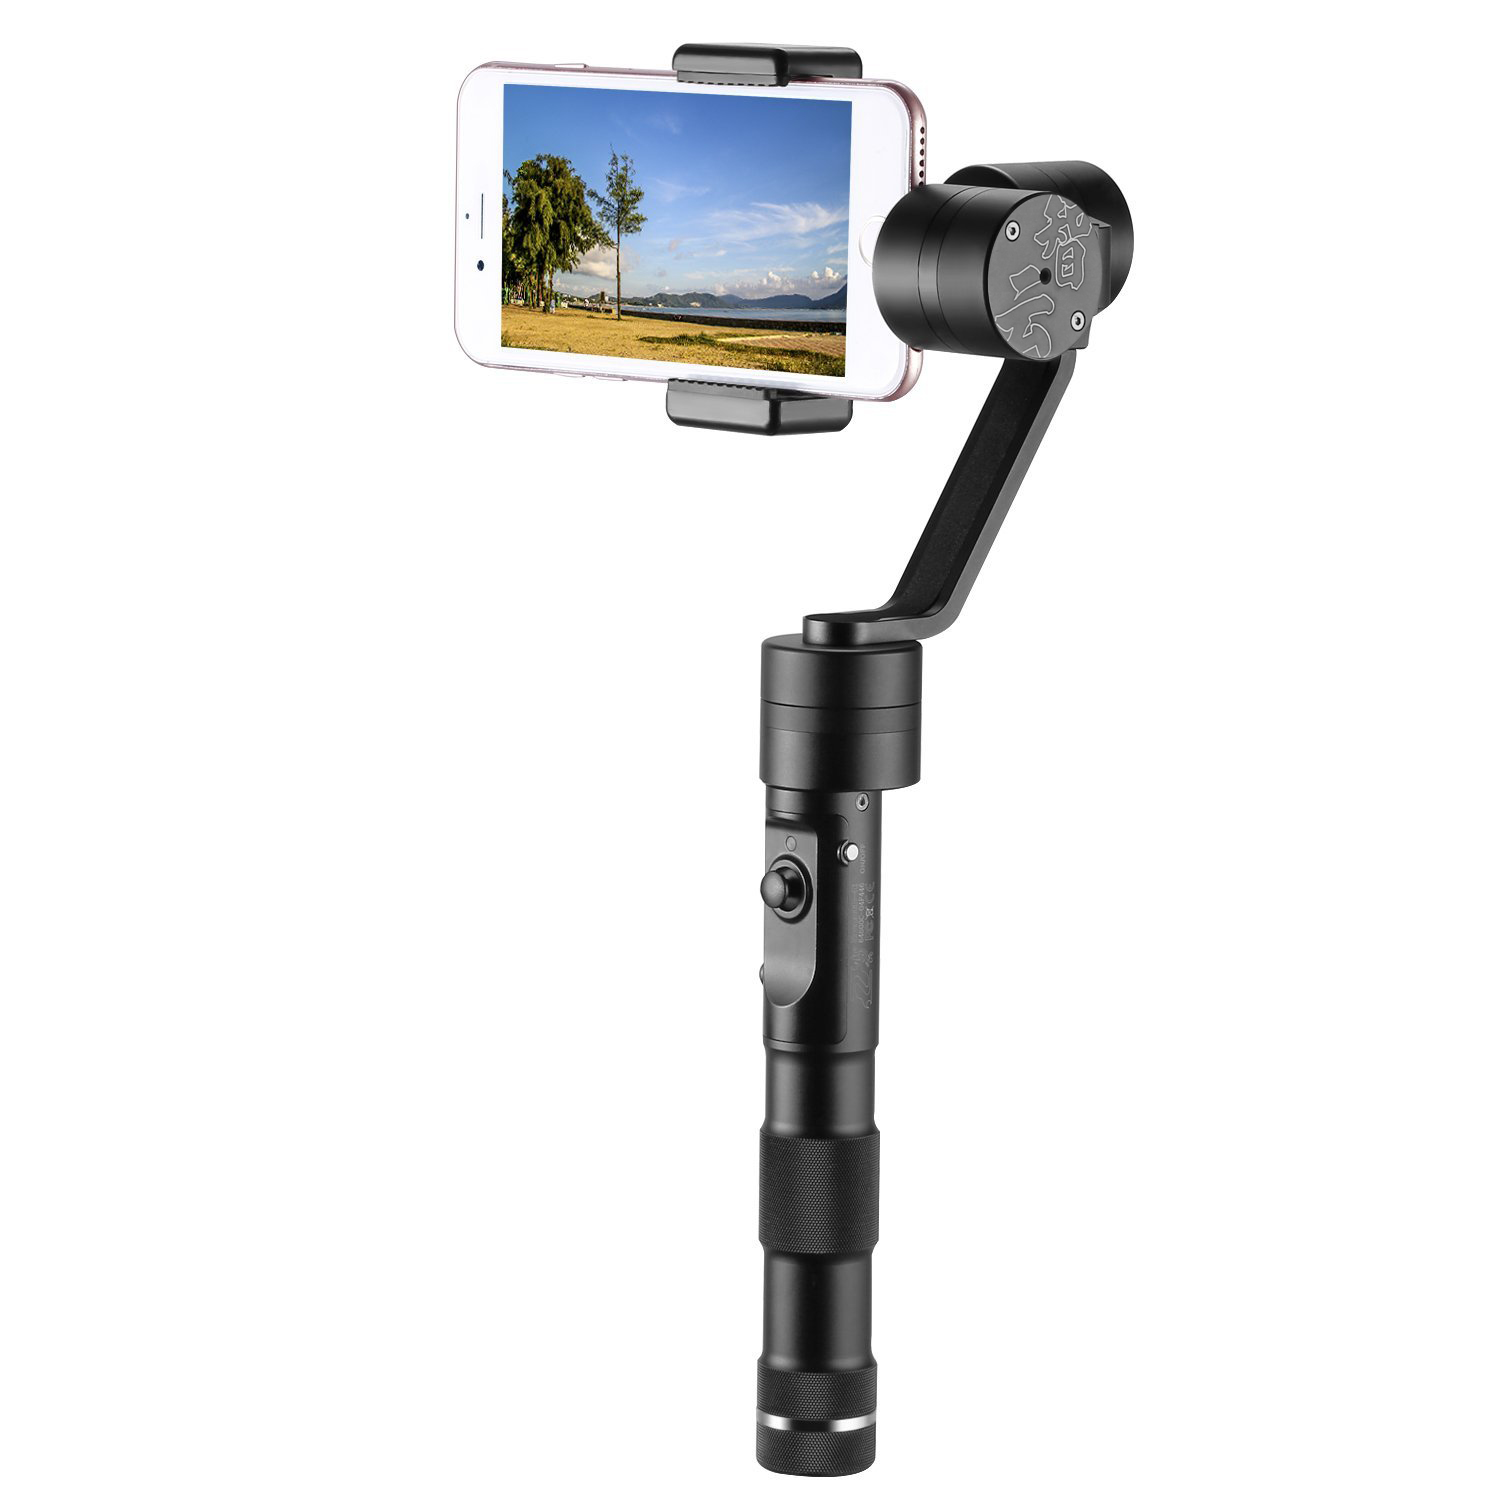 Z1-Smooth-C 3 Axis Handheld Smartphone Gimbal Stabilizer for iPhone 6s ...